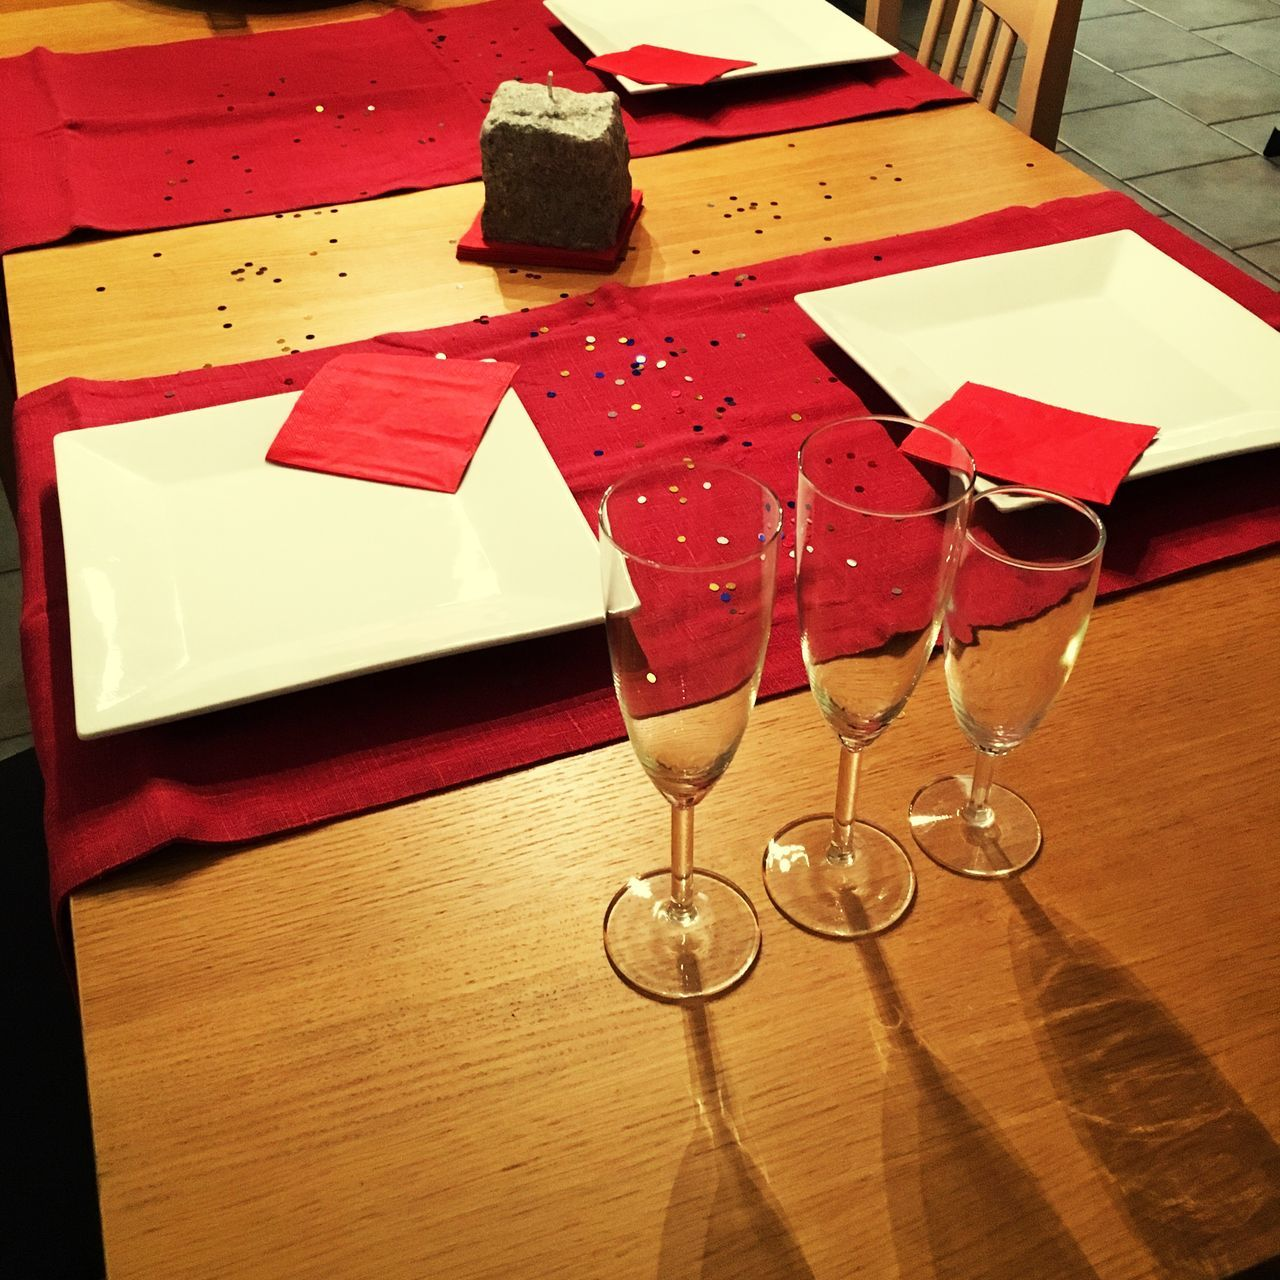 CLOSE-UP OF RED WINE GLASSES ON TABLE